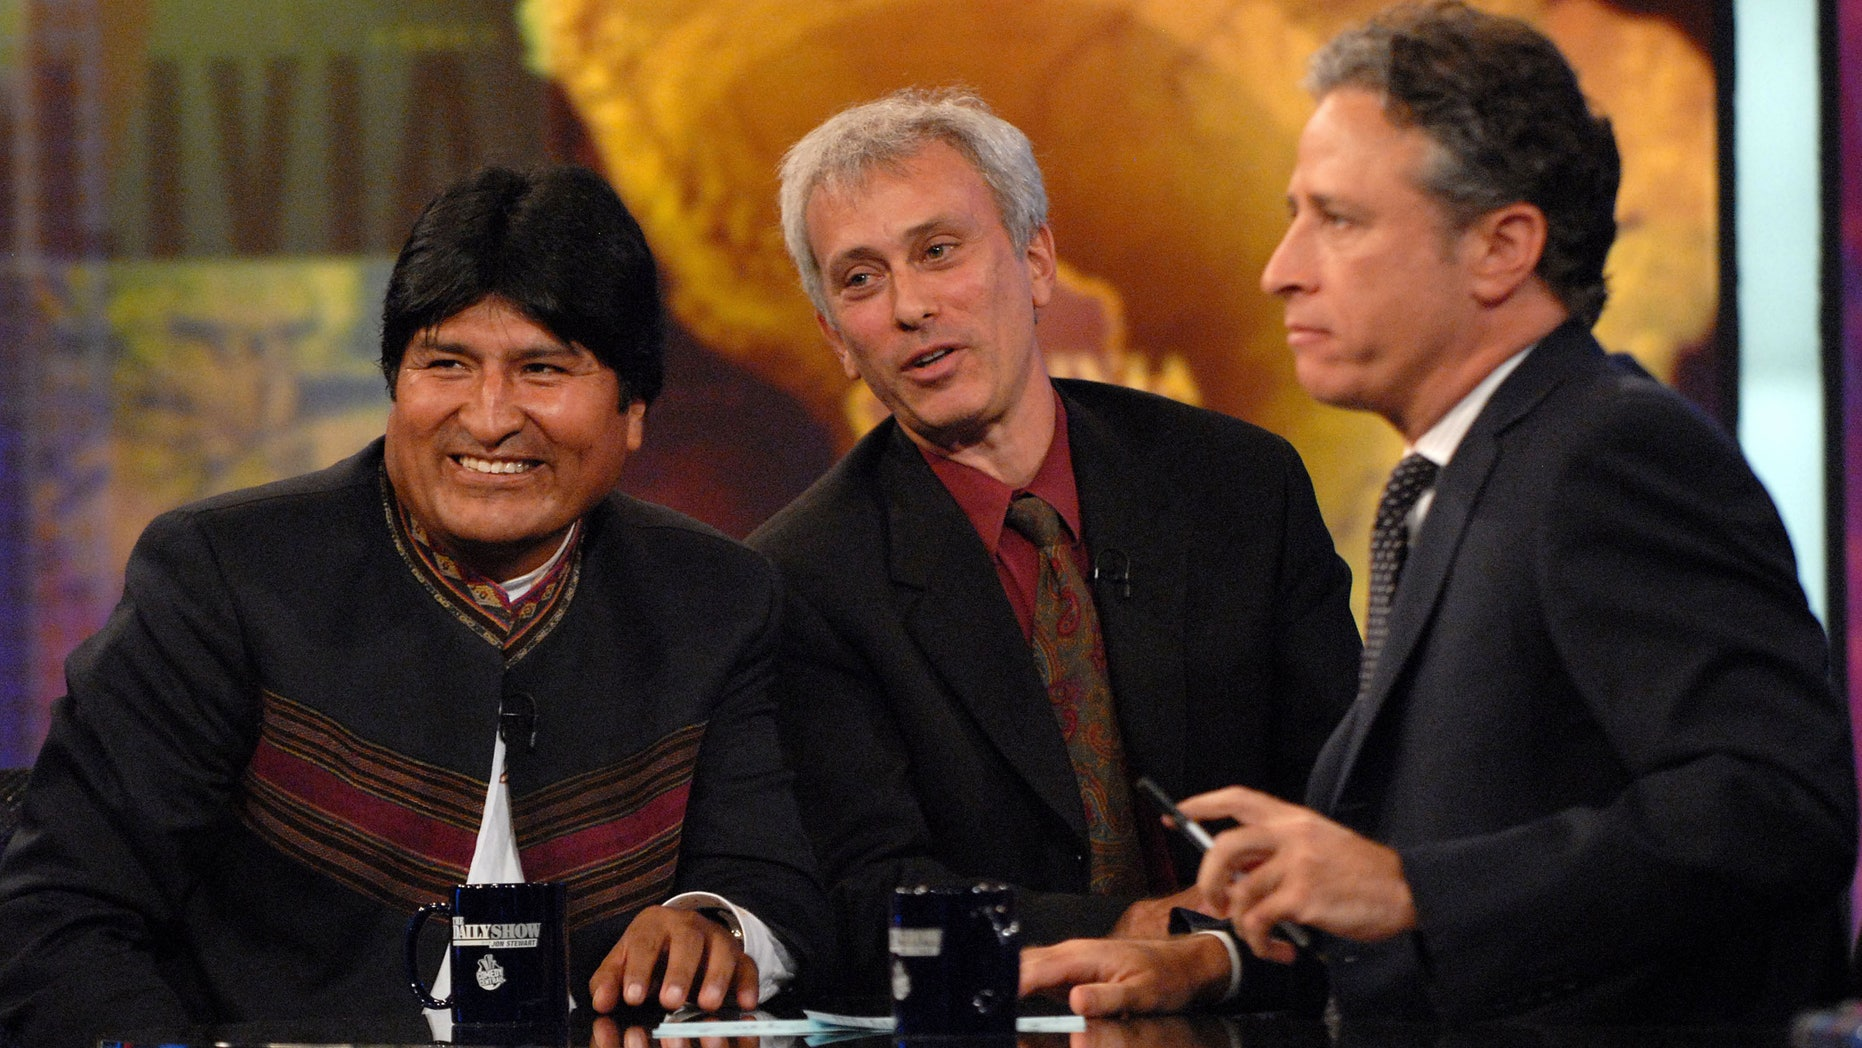 """FILE - In this Sept. 25, 2007 file photo, Bolivian President Evo Morales, left, speaks with host Jon Stewart, right,  as an interpreter looks on, during a taping of Comedy Central's """"The Daily Show with Jon Stewart"""" in New York. Morales, a poor farmer, became the country's first indigenous president and assumed office in 2006. After more than 16 years and nearly 2,600 telecasts, Stewart will end his show on Aug. 6.  (AP Photo/Peter Kramer, FIle)"""